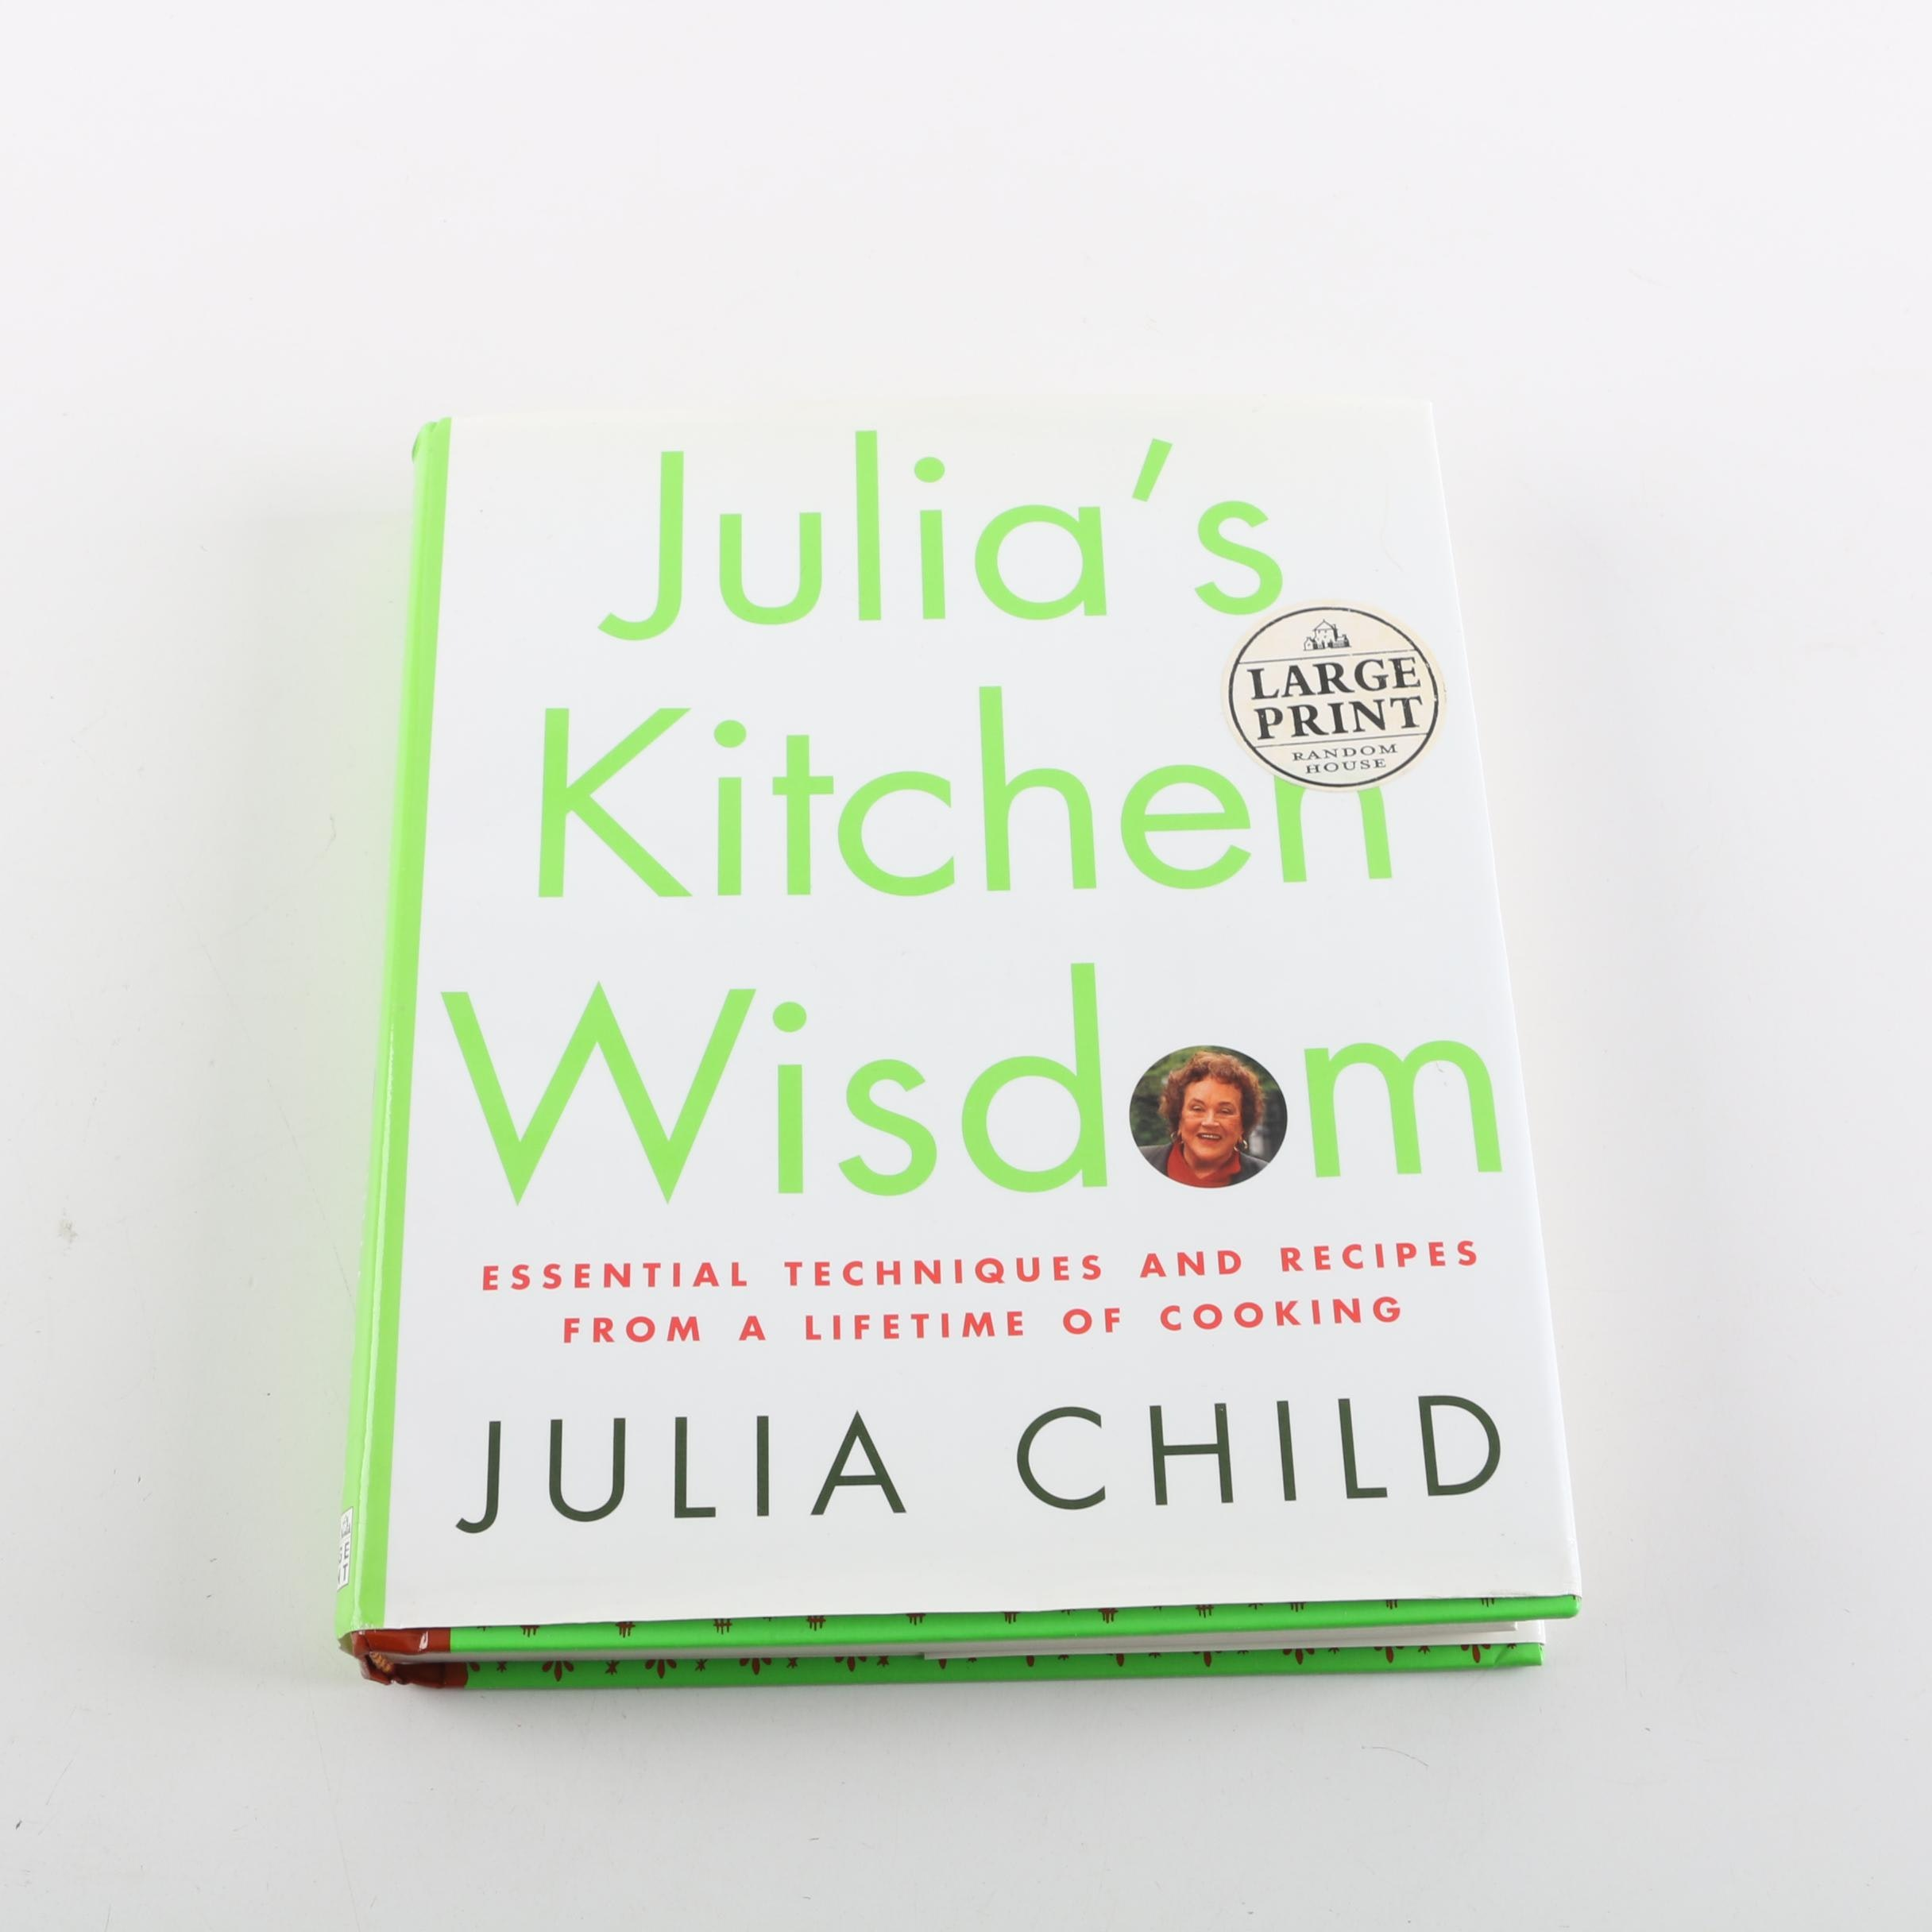 """2000 First Large Print Edition of """"Julia's Kitchen Wisdom"""" by Julia Child"""